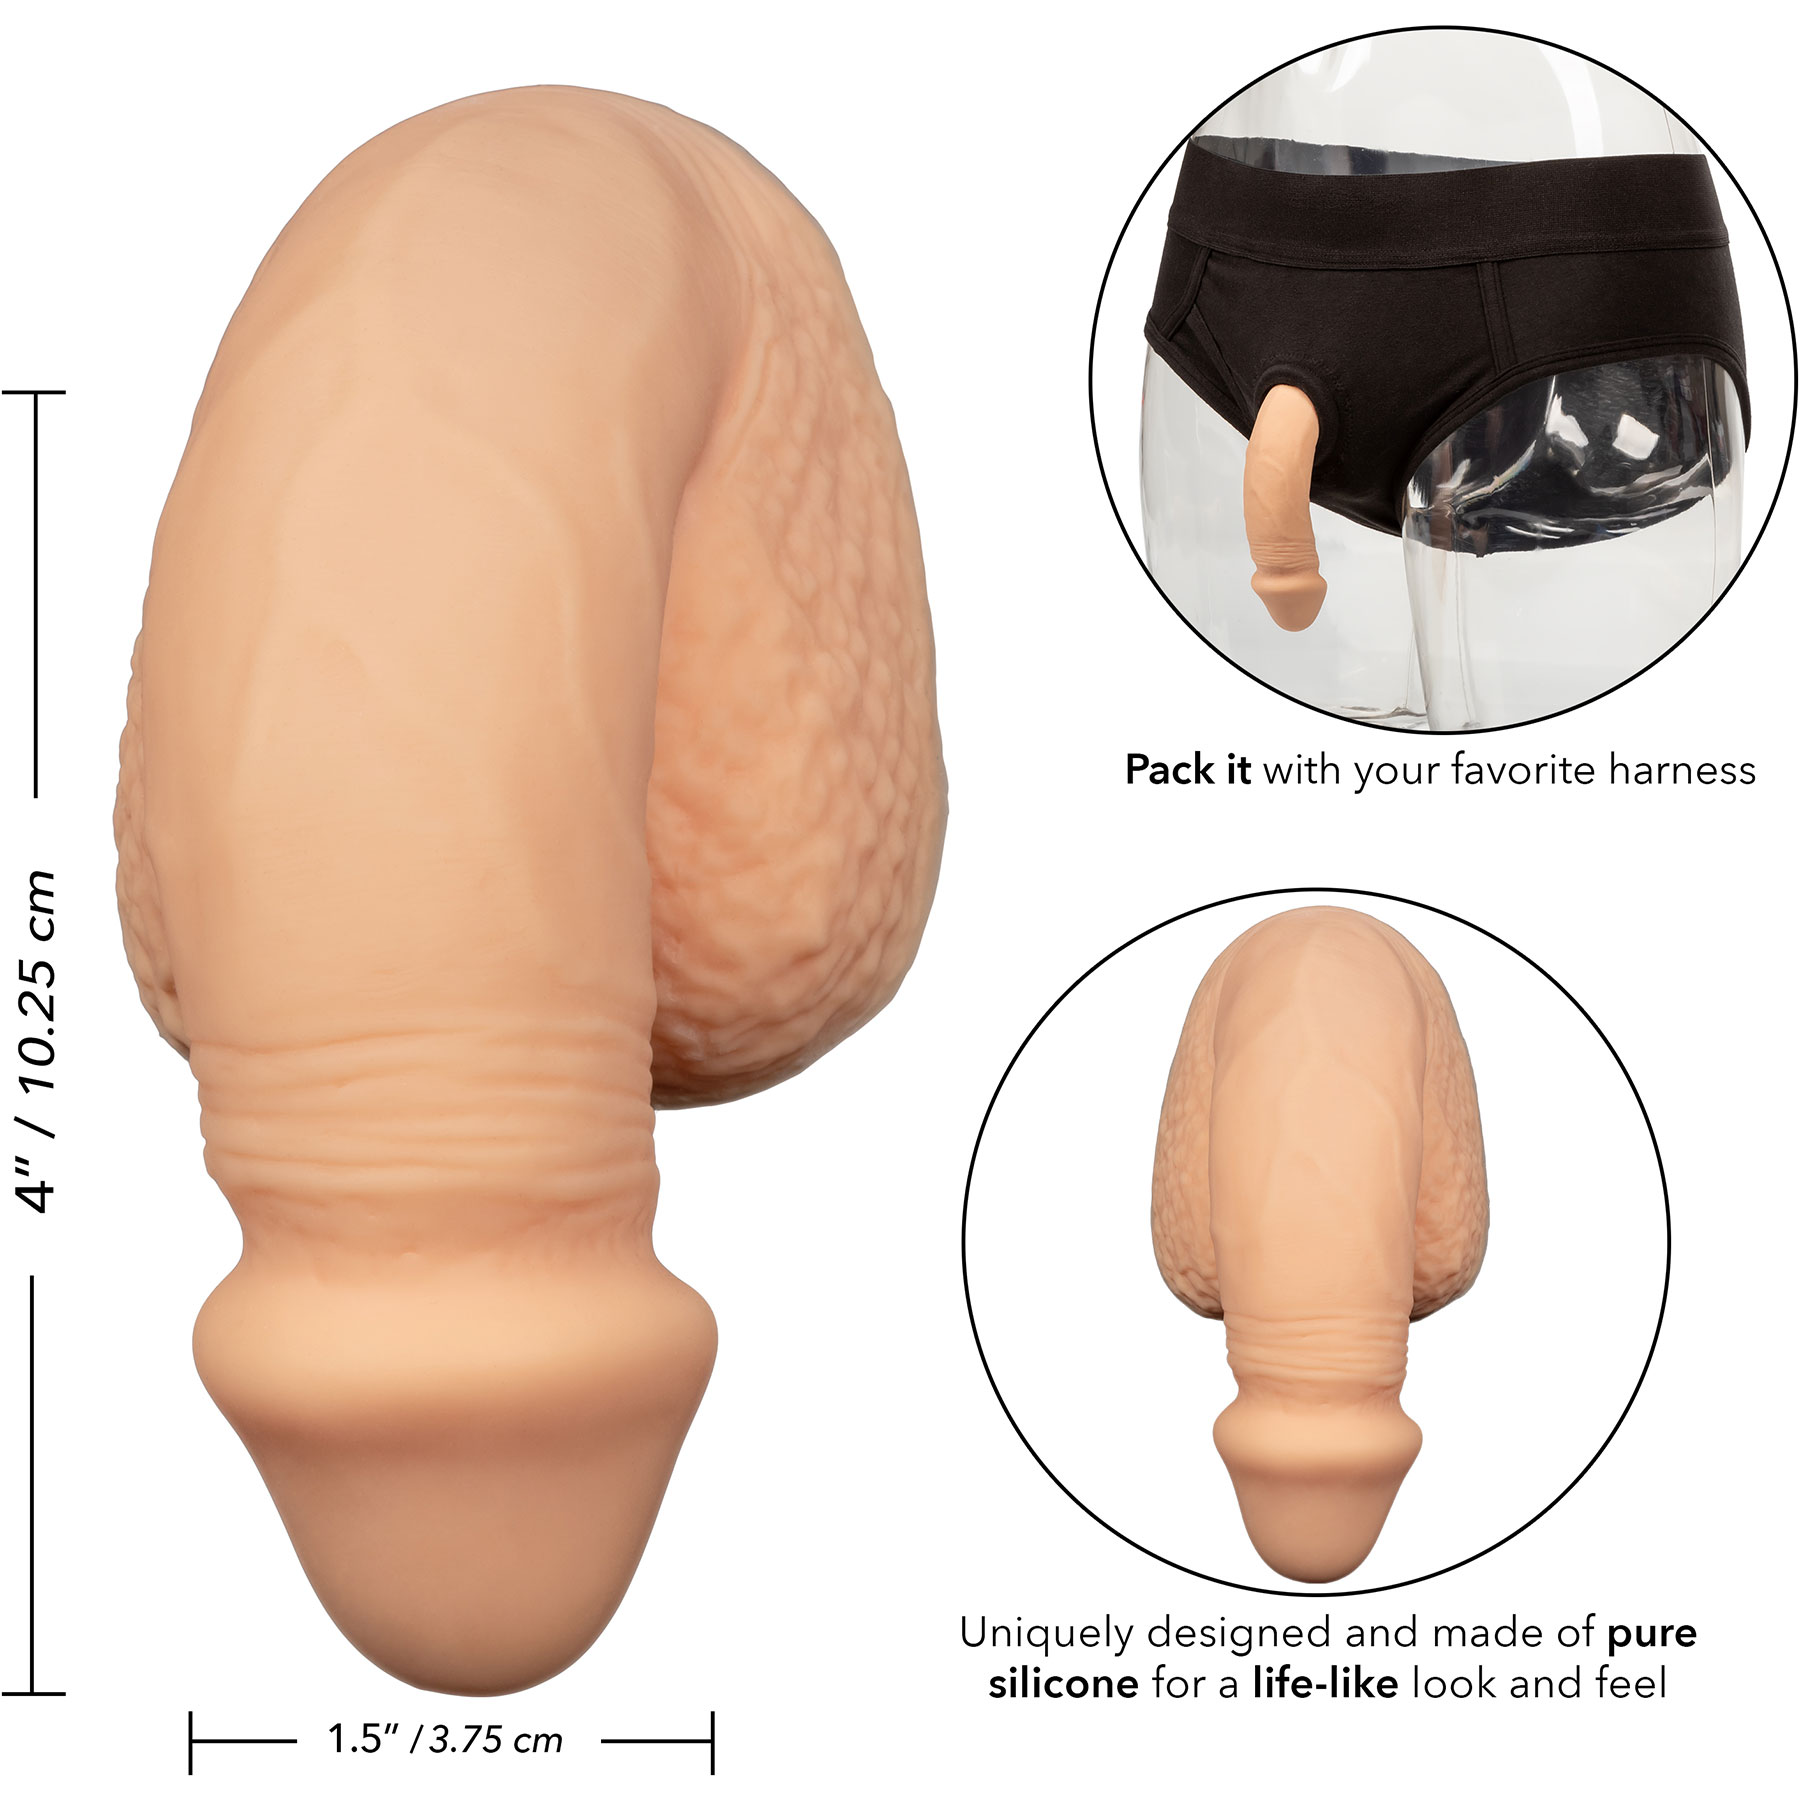 Packer Gear Silicone Packing Penis 4